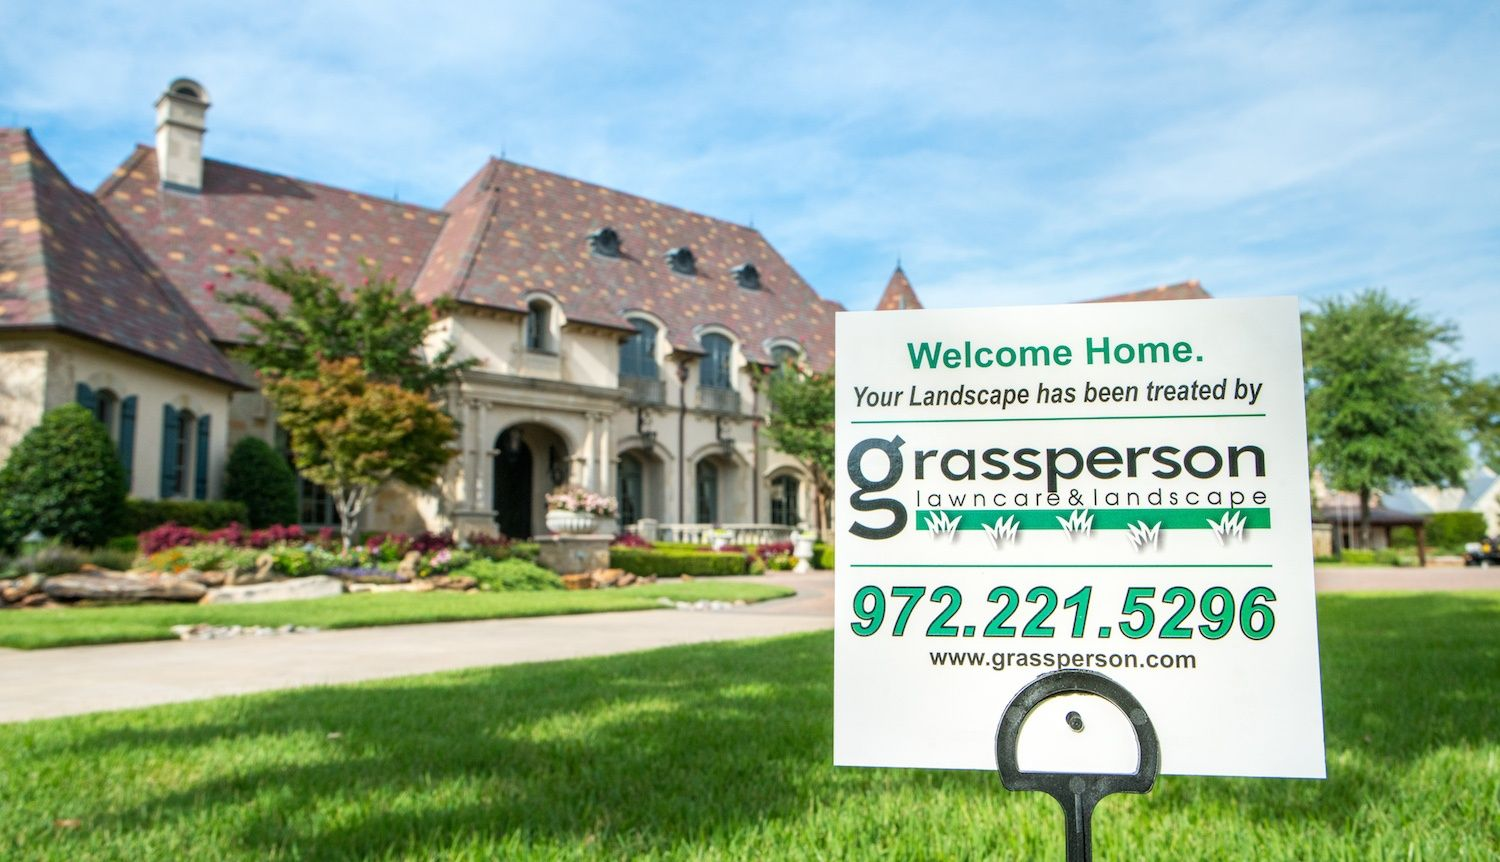 Grassperson Lawn Care & Landscape sign in lawn in Flower Mound, TX